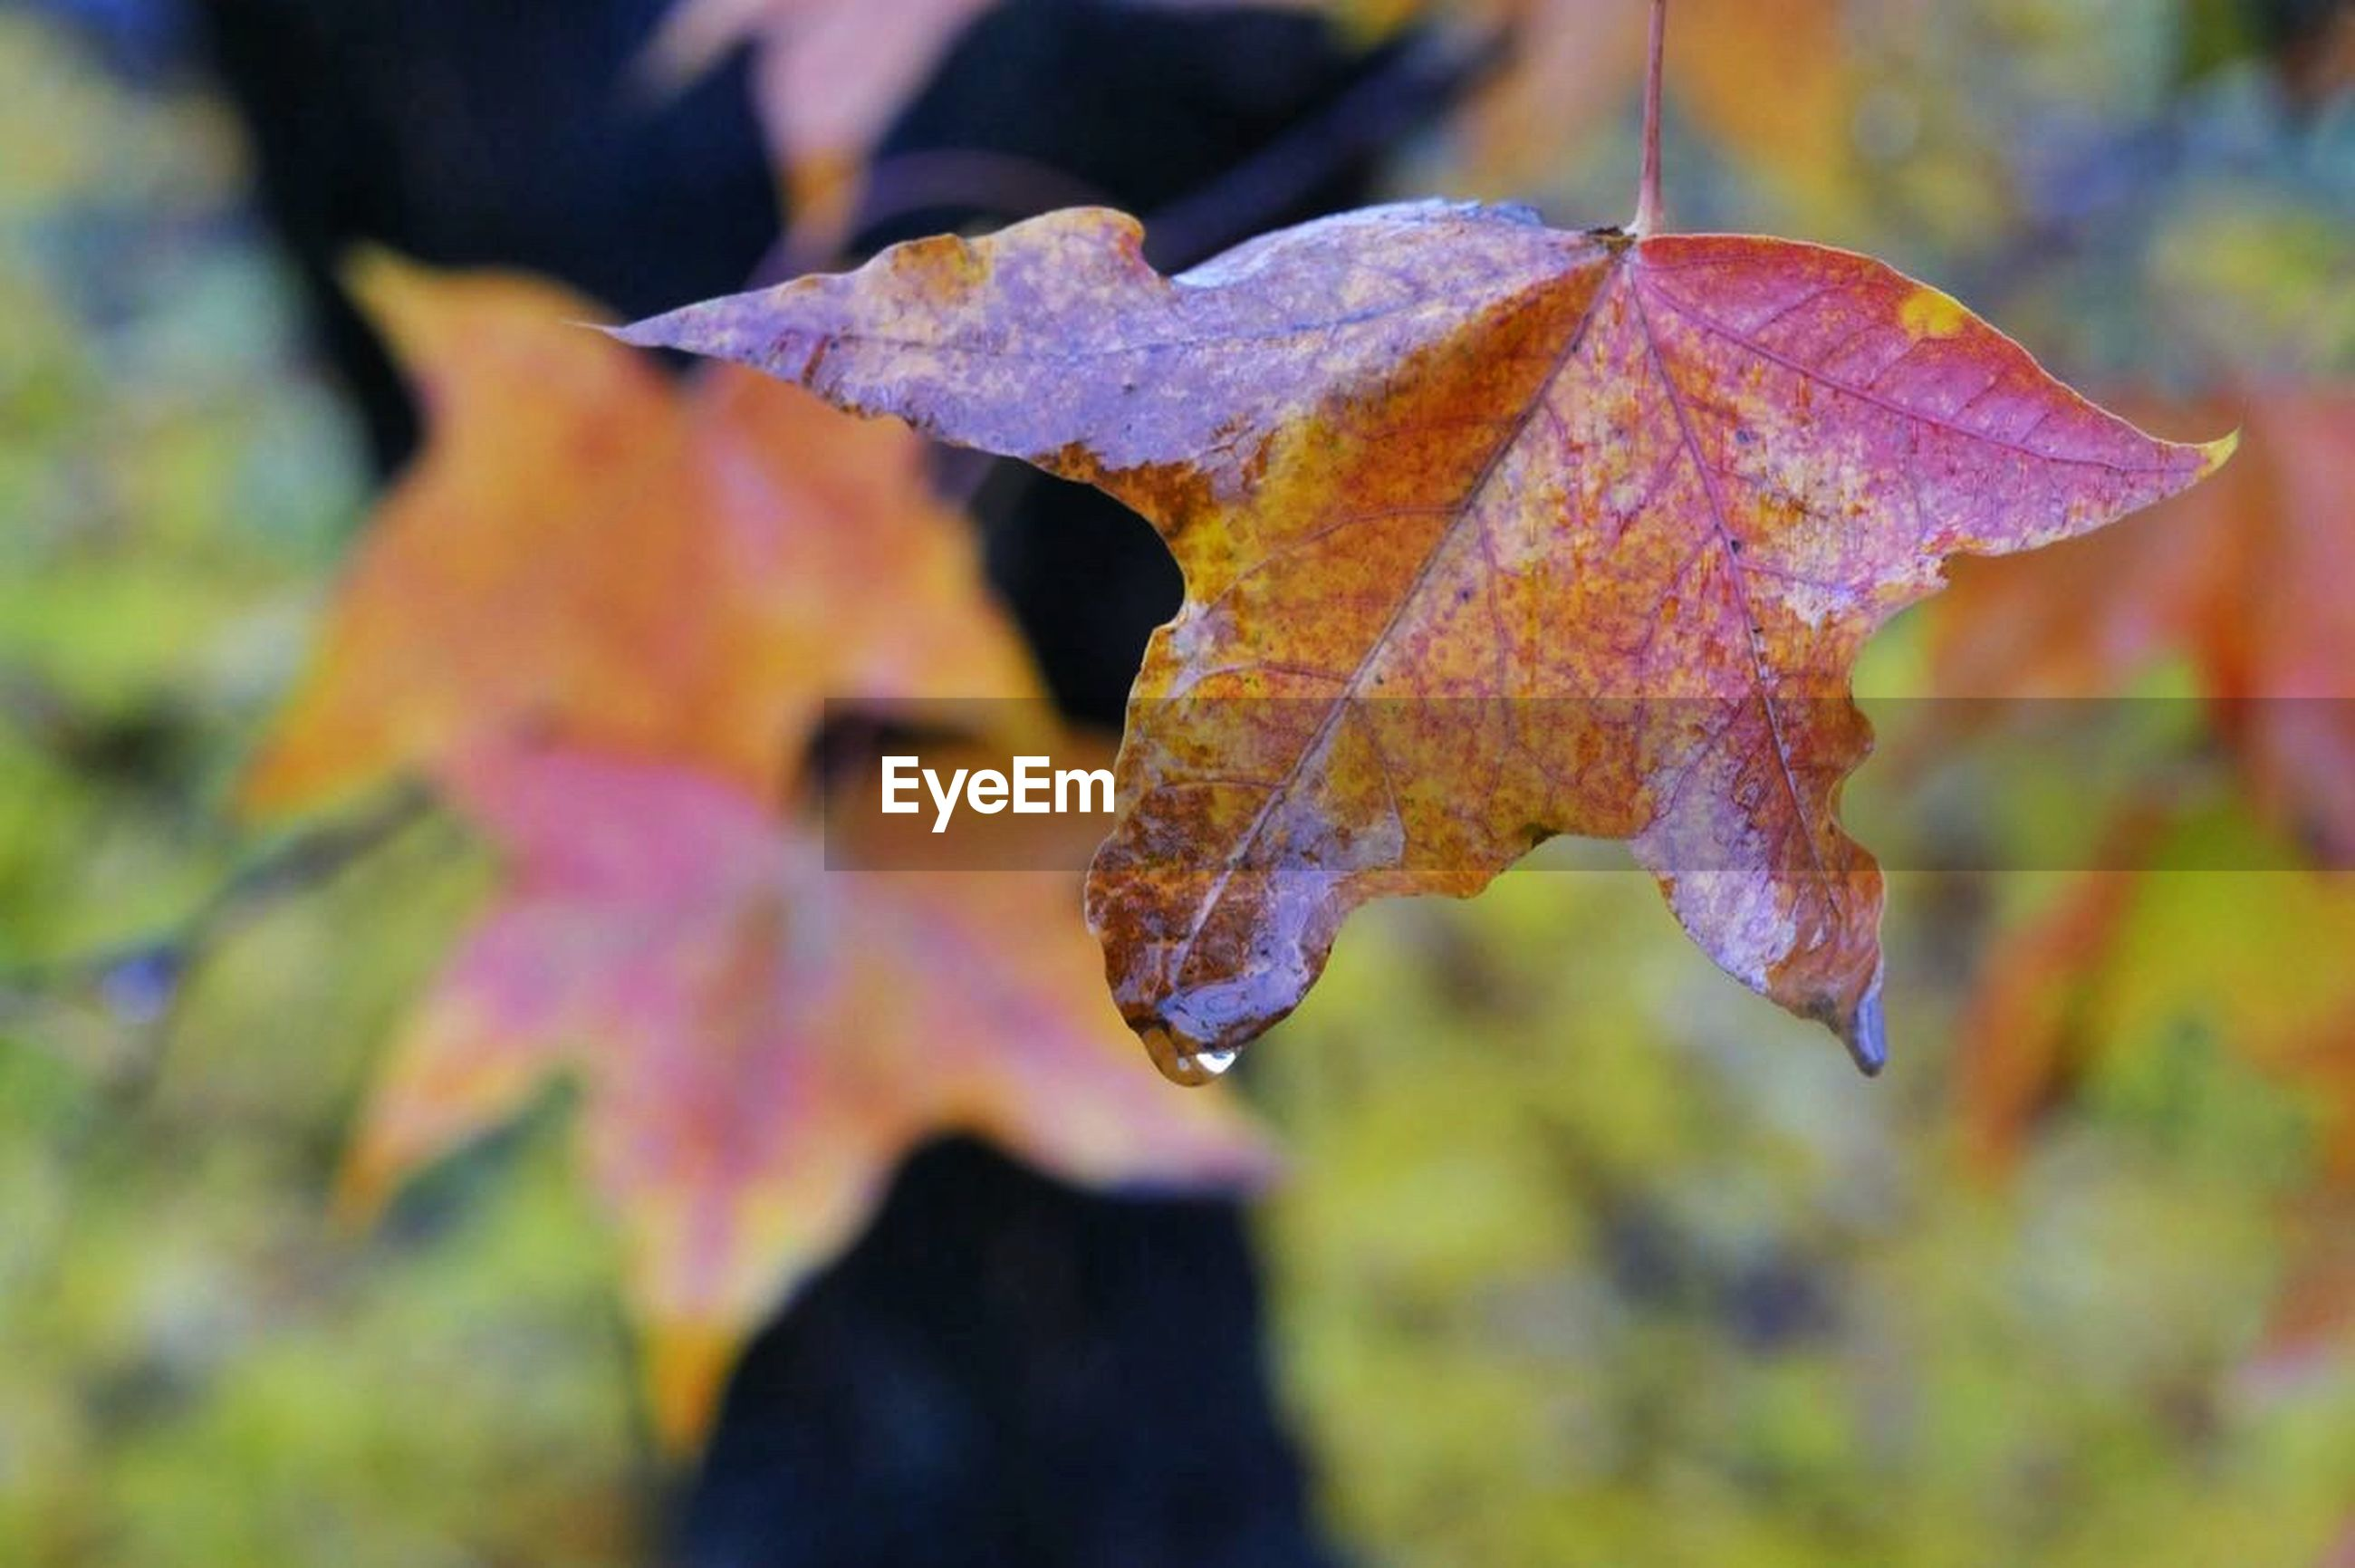 leaf, season, autumn, close-up, change, focus on foreground, nature, beauty in nature, growth, selective focus, maple leaf, leaves, fragility, leaf vein, wet, drop, day, outdoors, tranquility, natural pattern